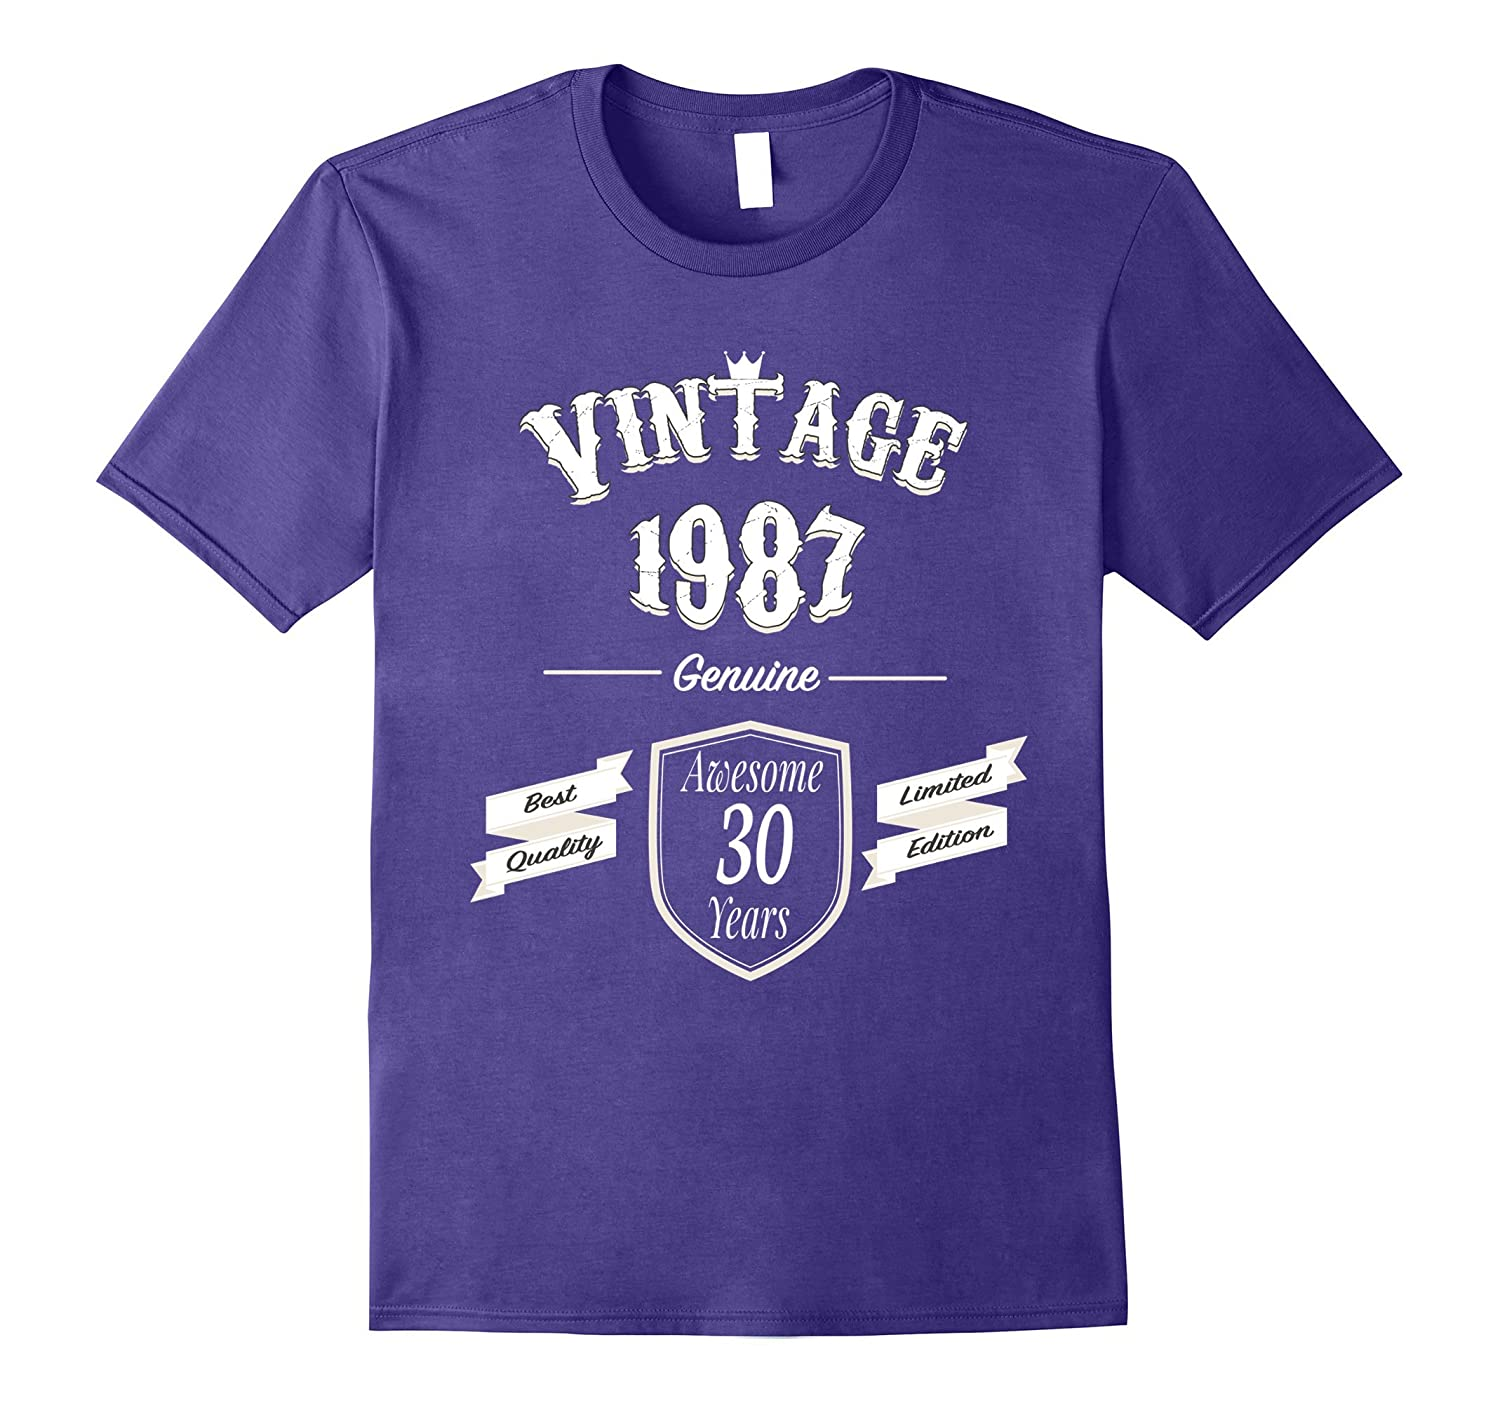 30th Birthday Gift for Men and Women Tshirt, Vintage 1987-CL